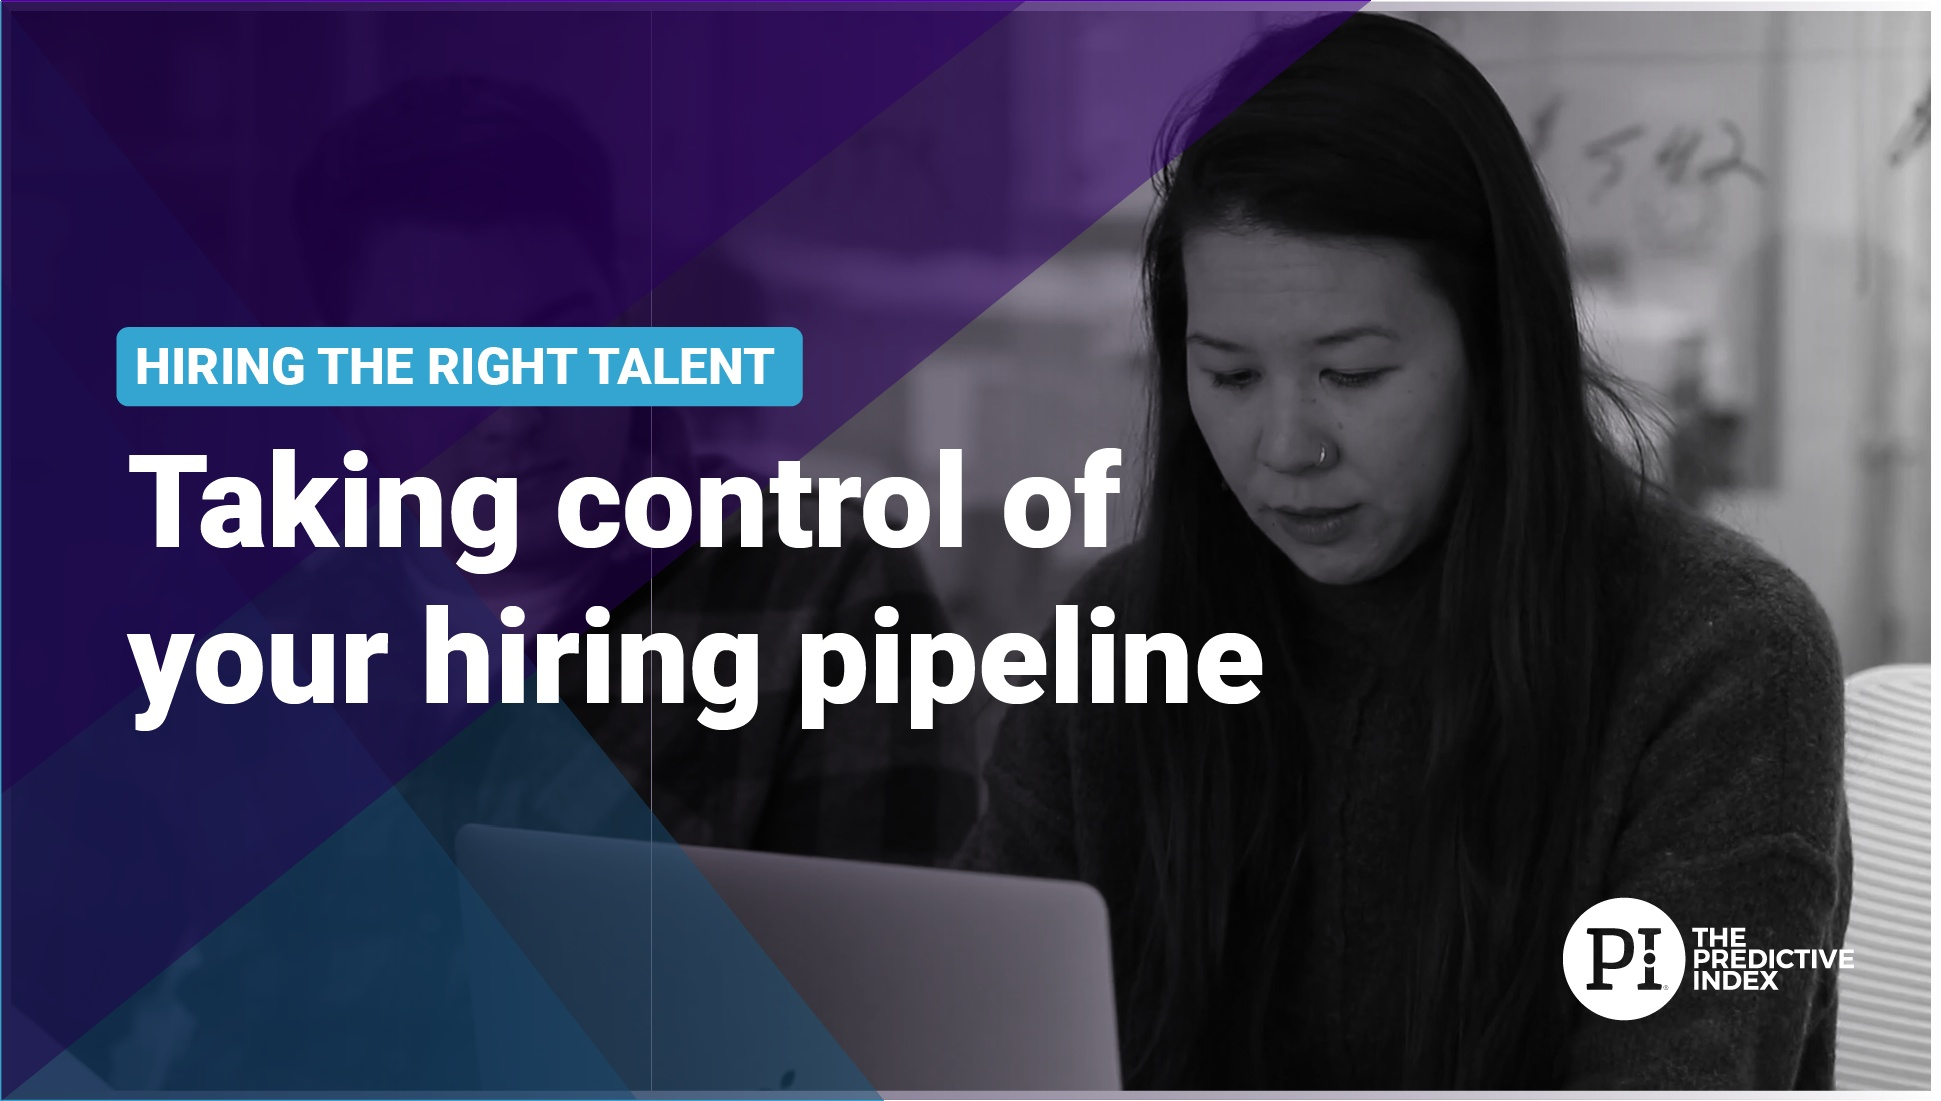 Taking control of your hiring pipeline - P